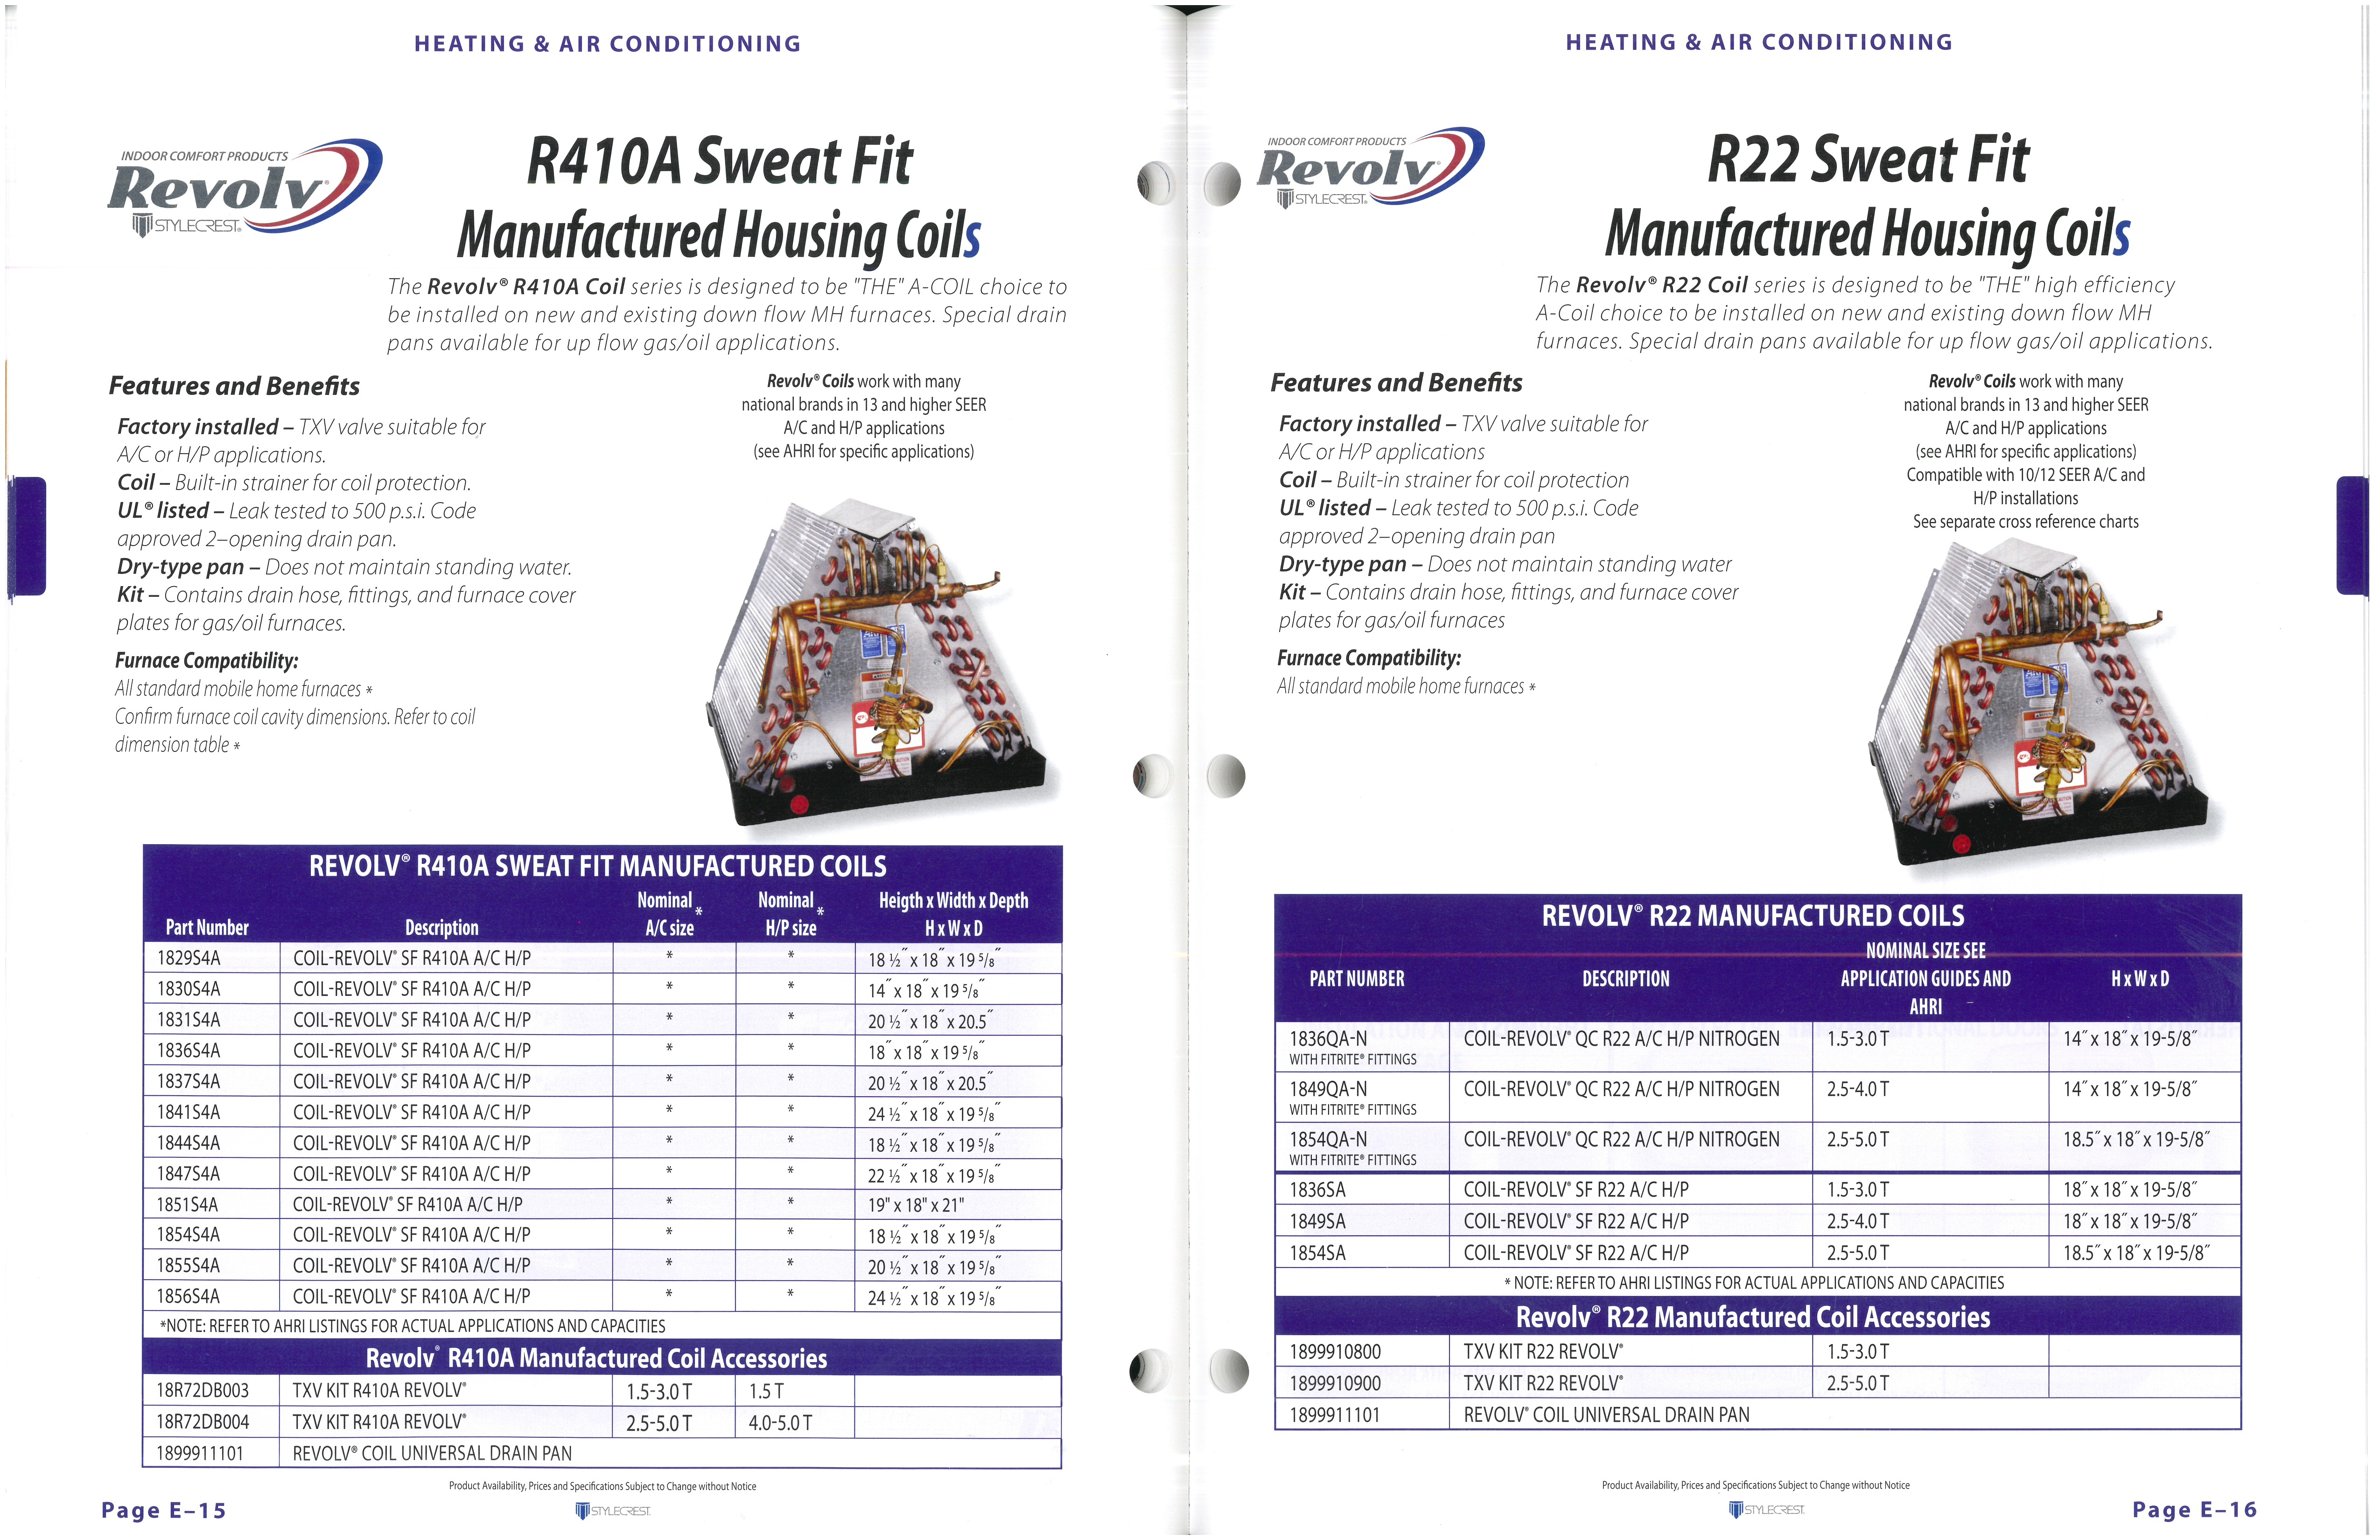 R410A Seat it Manufactured Housing Coils